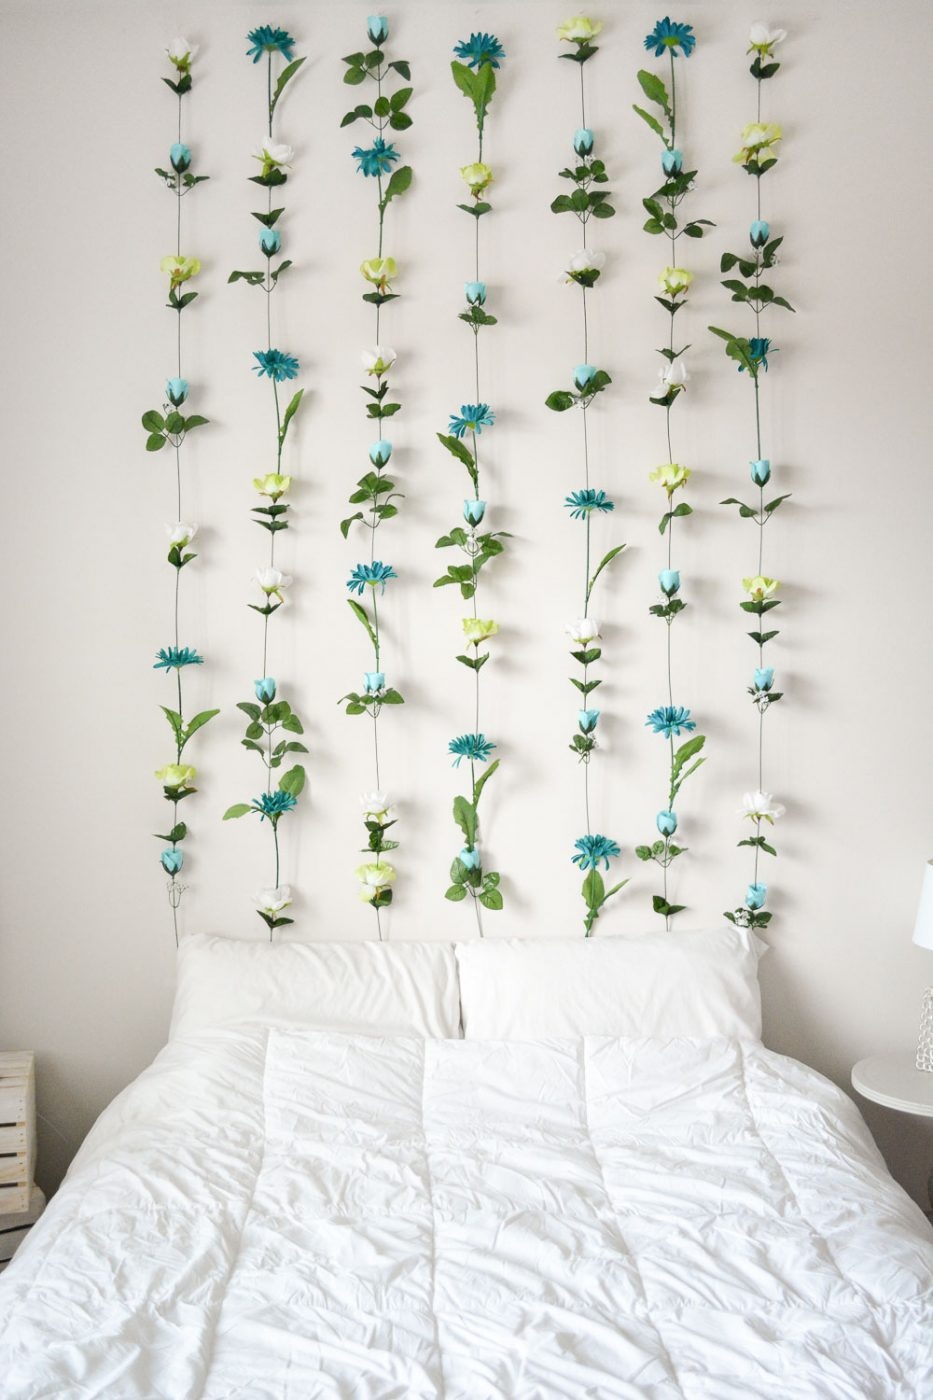 DIY Flower Wall Headboard DIY Flower Wall Headboard ... Part 58